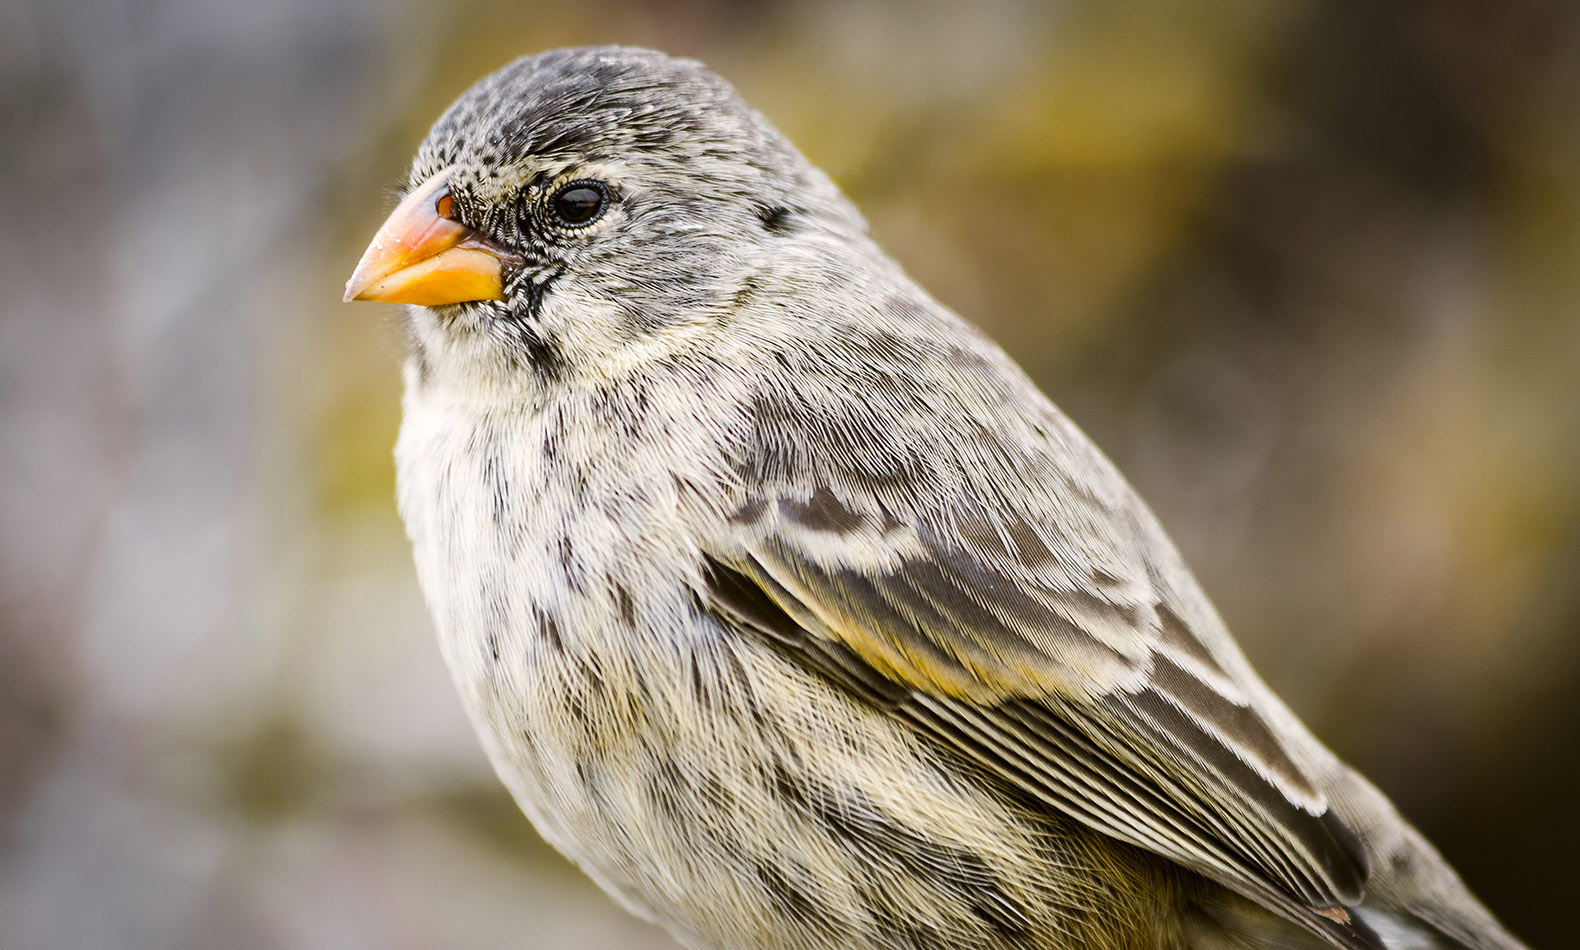 Darwin's finches face potential extinction